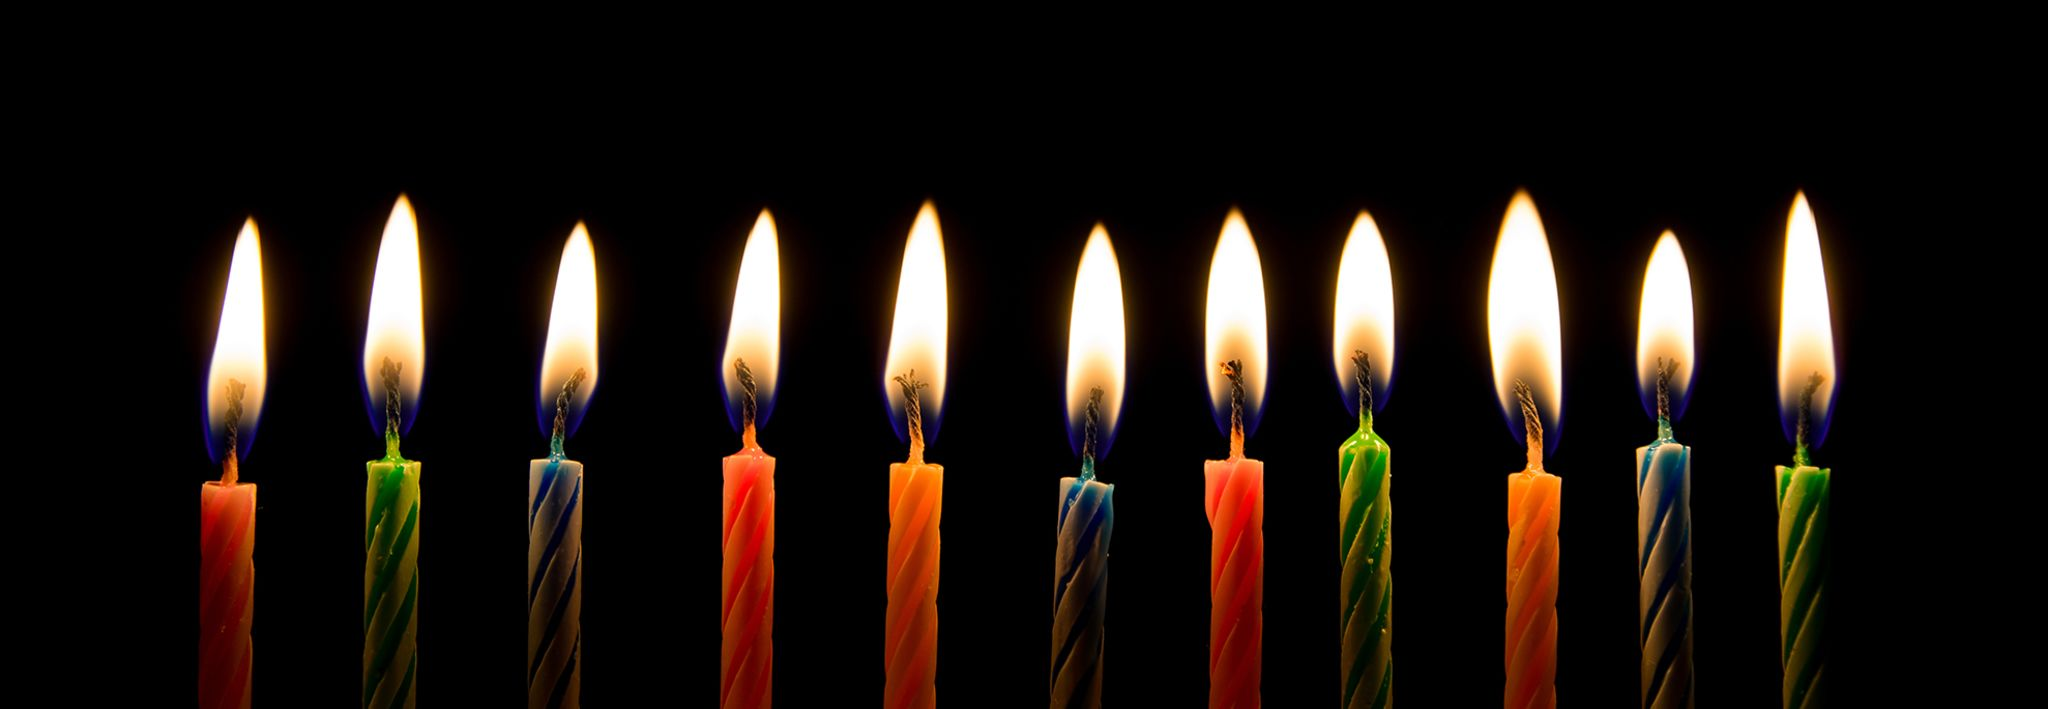 Eleven birthday candles are lit on a birthday cake.